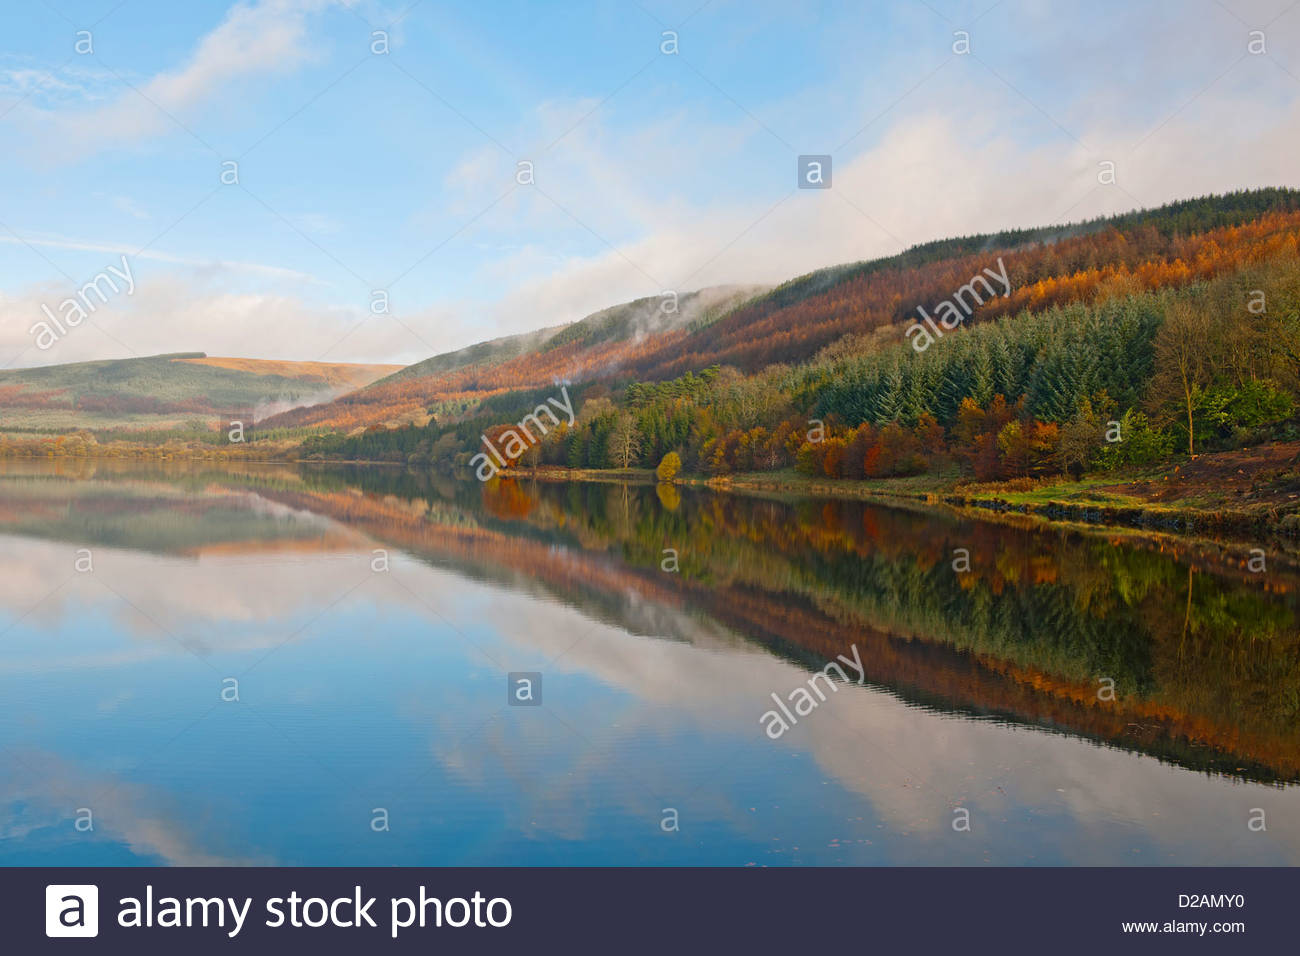 Rural hills reflected in still lake Stock Photo